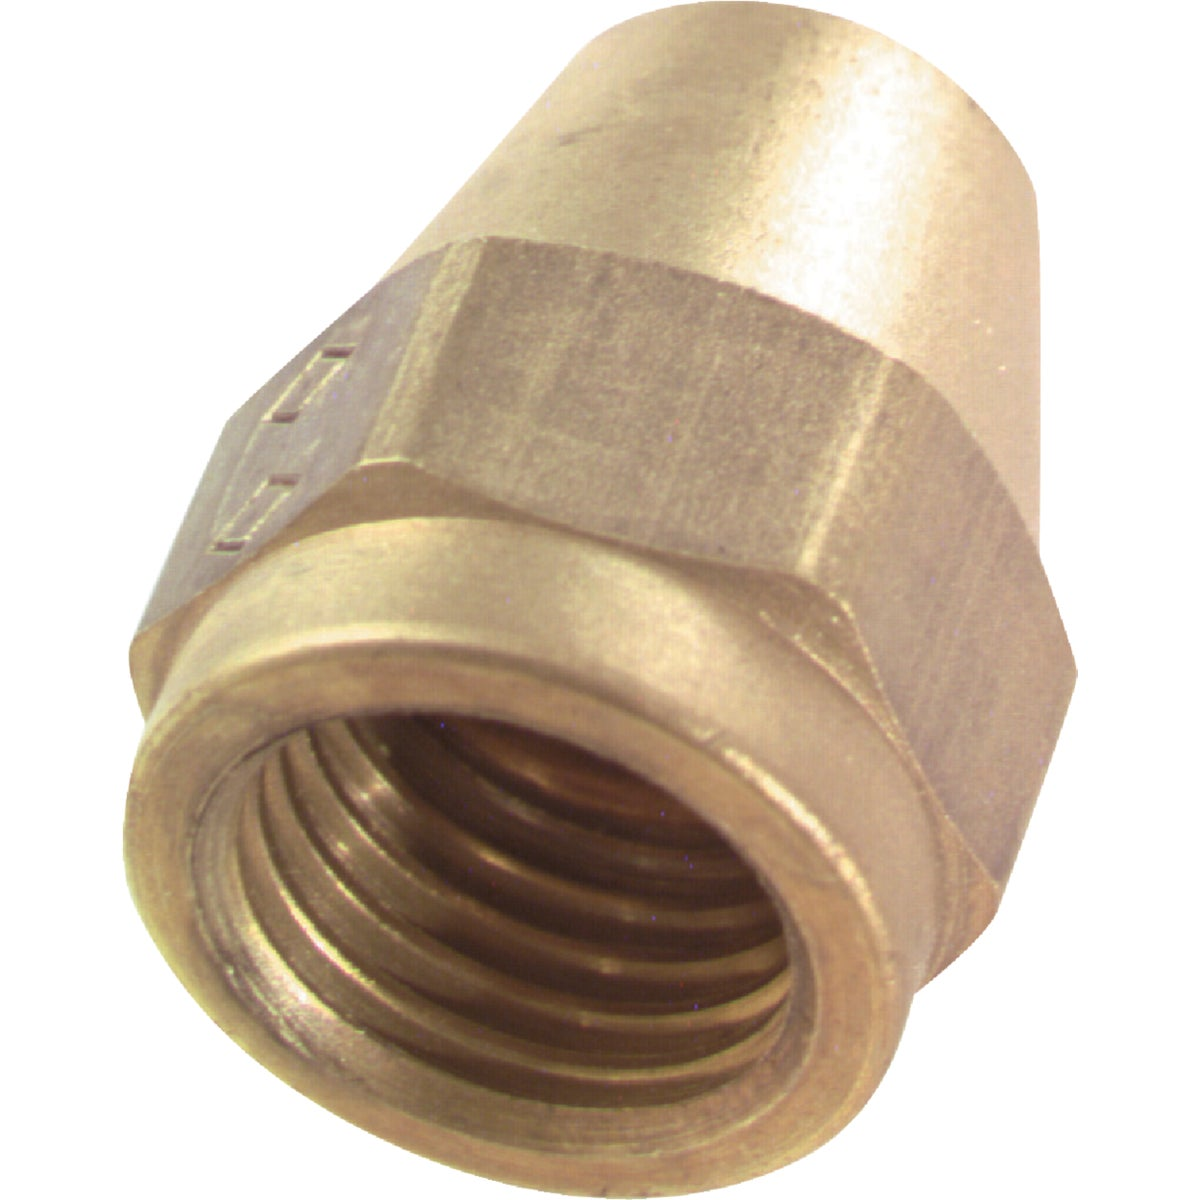 "1/2"" FLARE NUT"